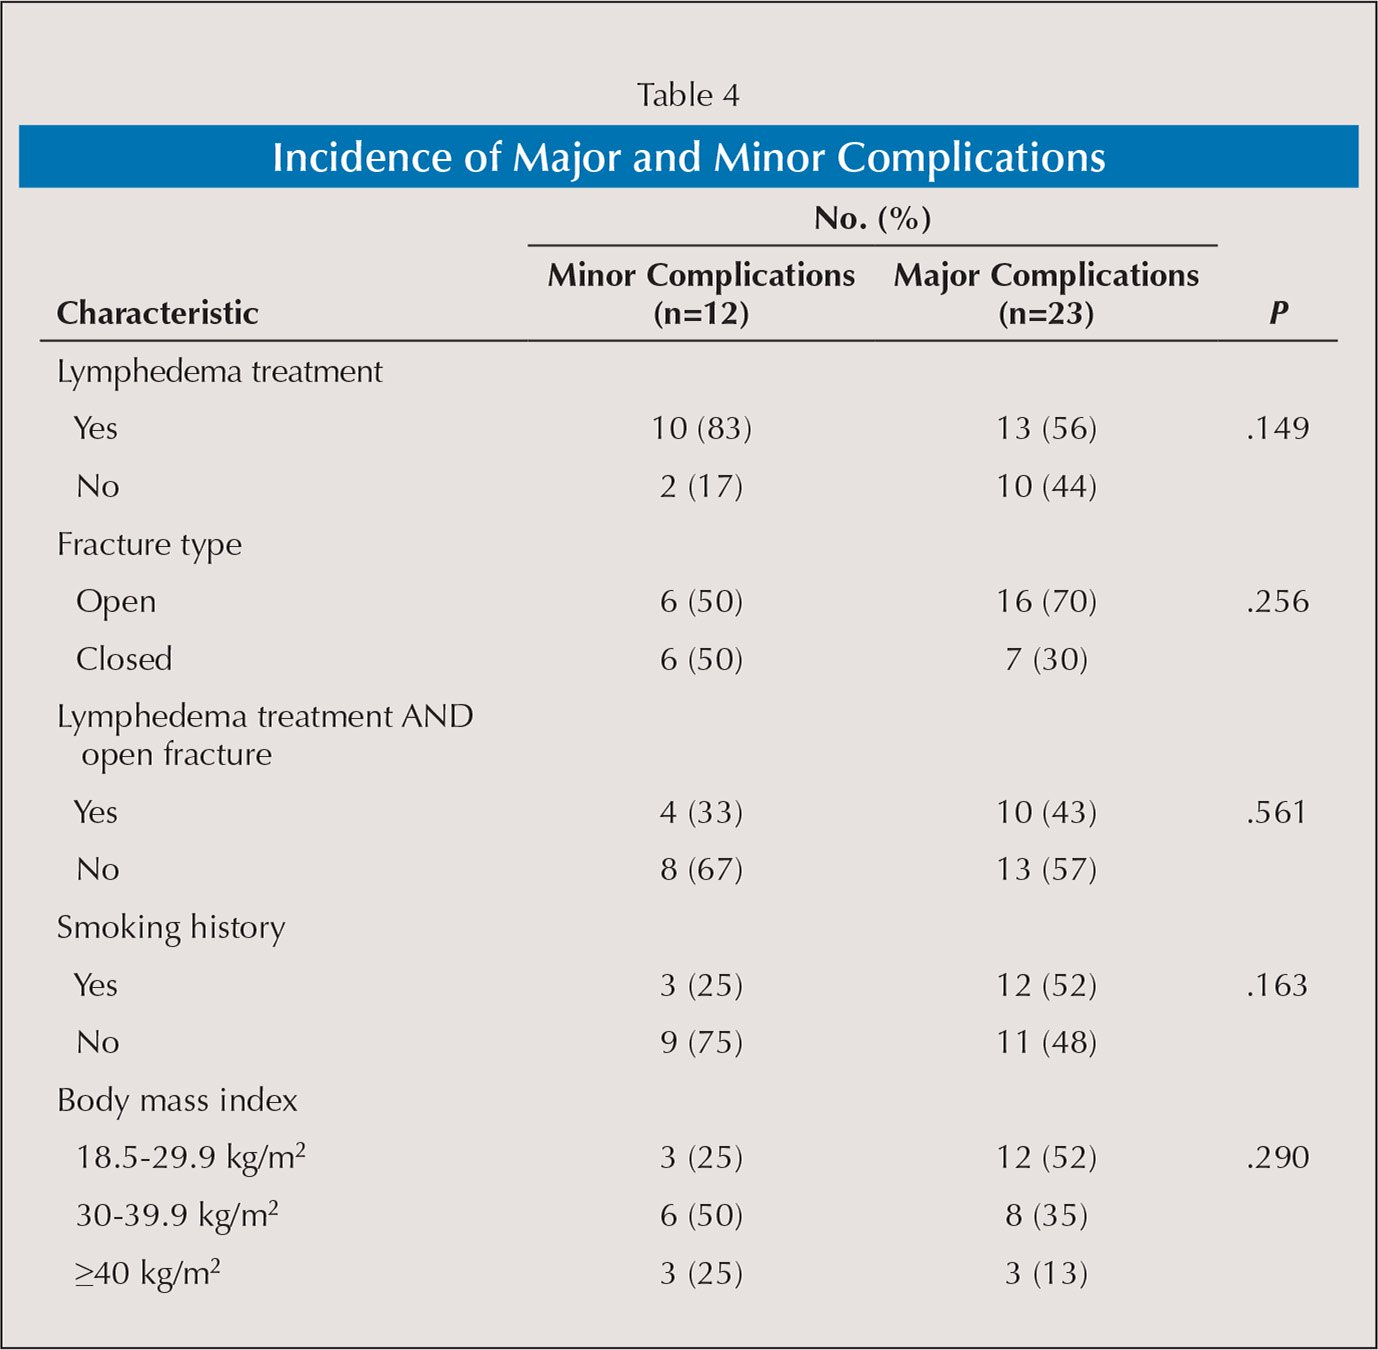 Incidence of Major and Minor Complications